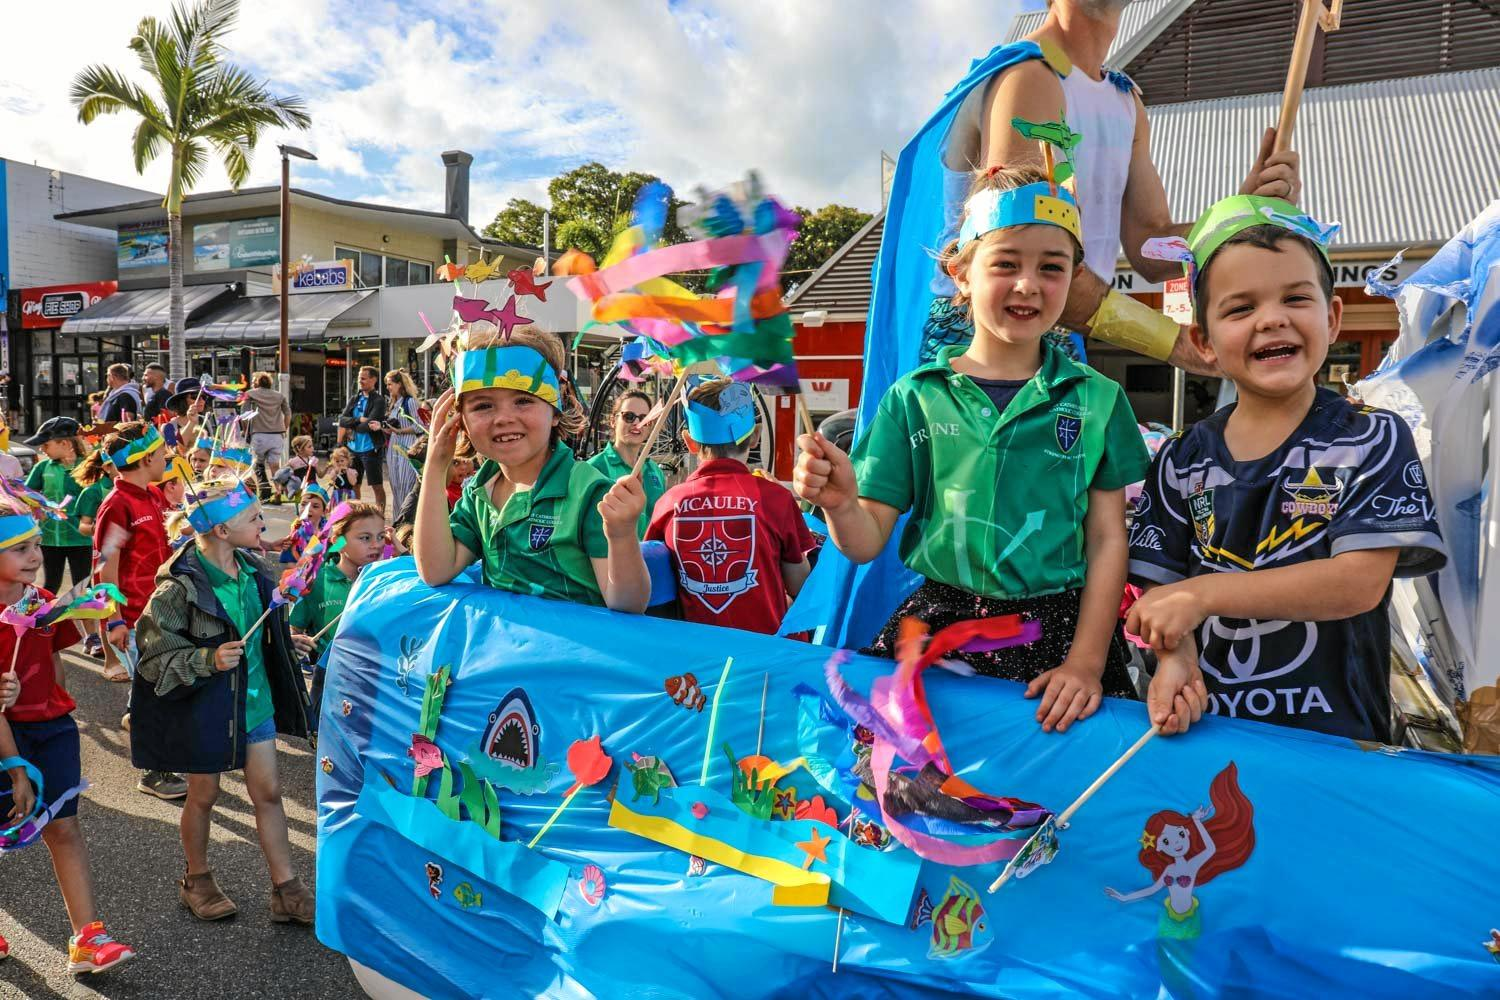 ALL SMILES: Children of all ages enjoyed the 2019 Rotary Street Parade in Airlie Beach.